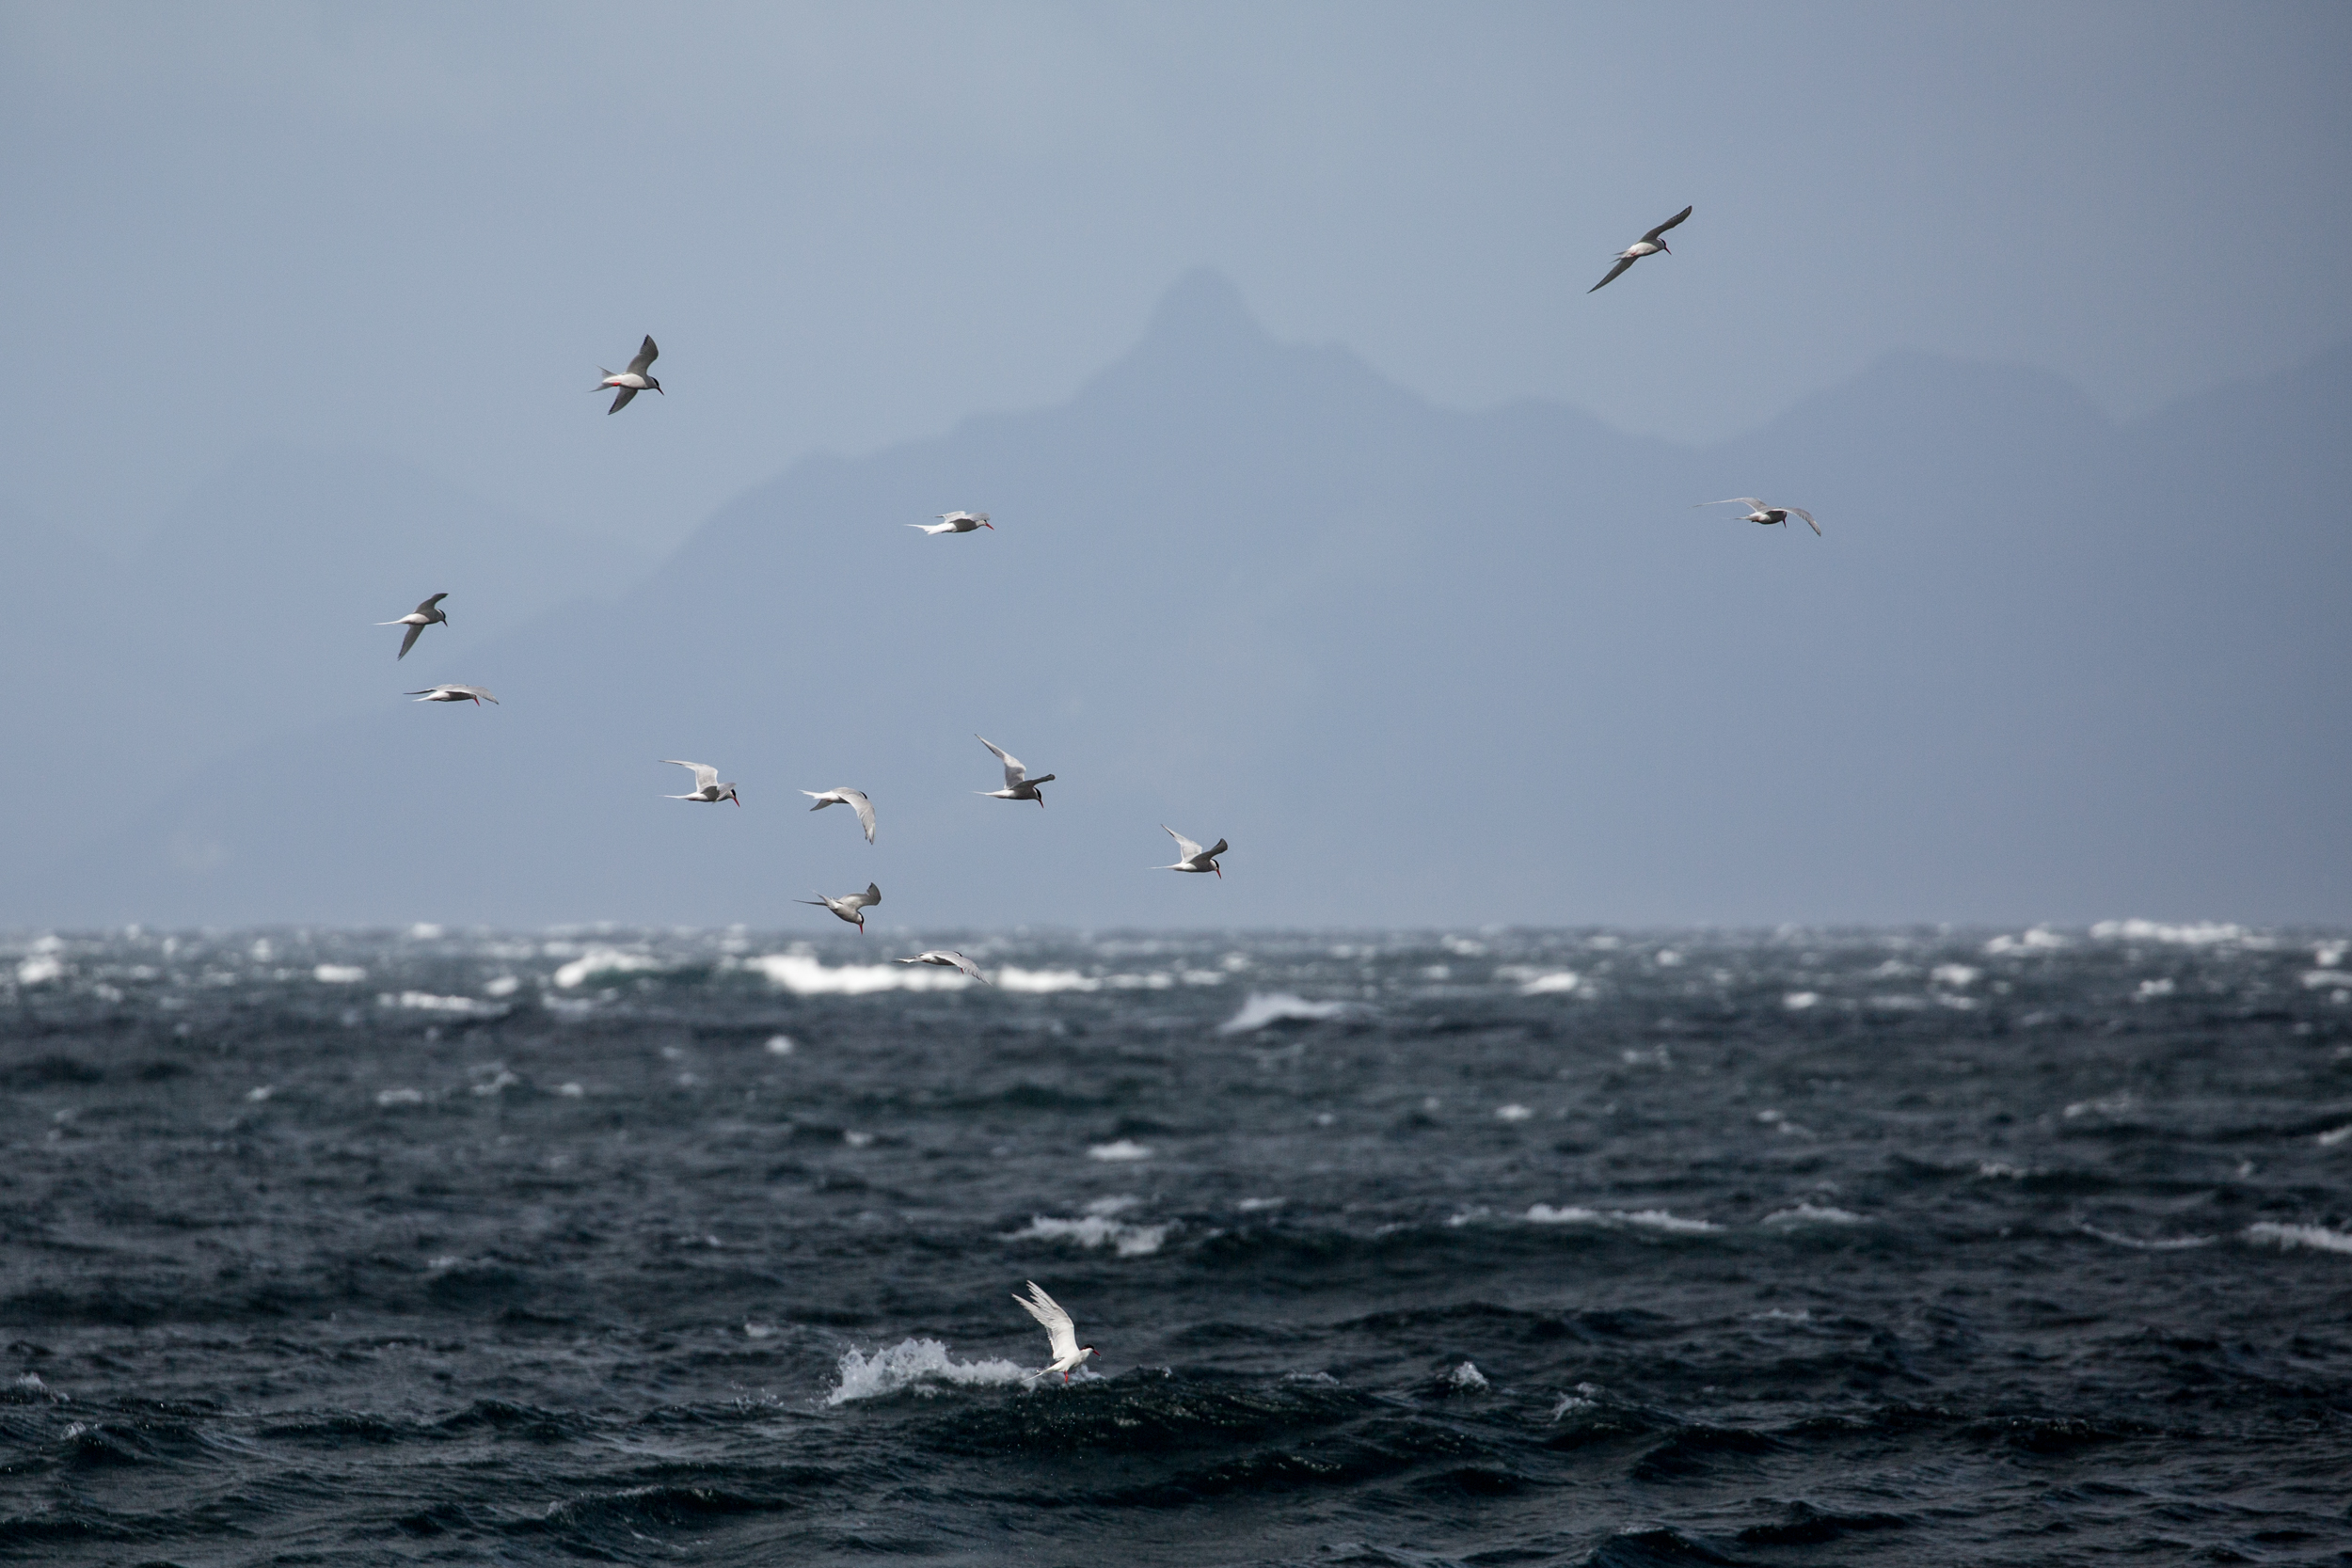 South American terns (Sterna hirundinacea) - South American terns feeding off the coast of Cabo Froward, the southernmost point of South America's mainland.